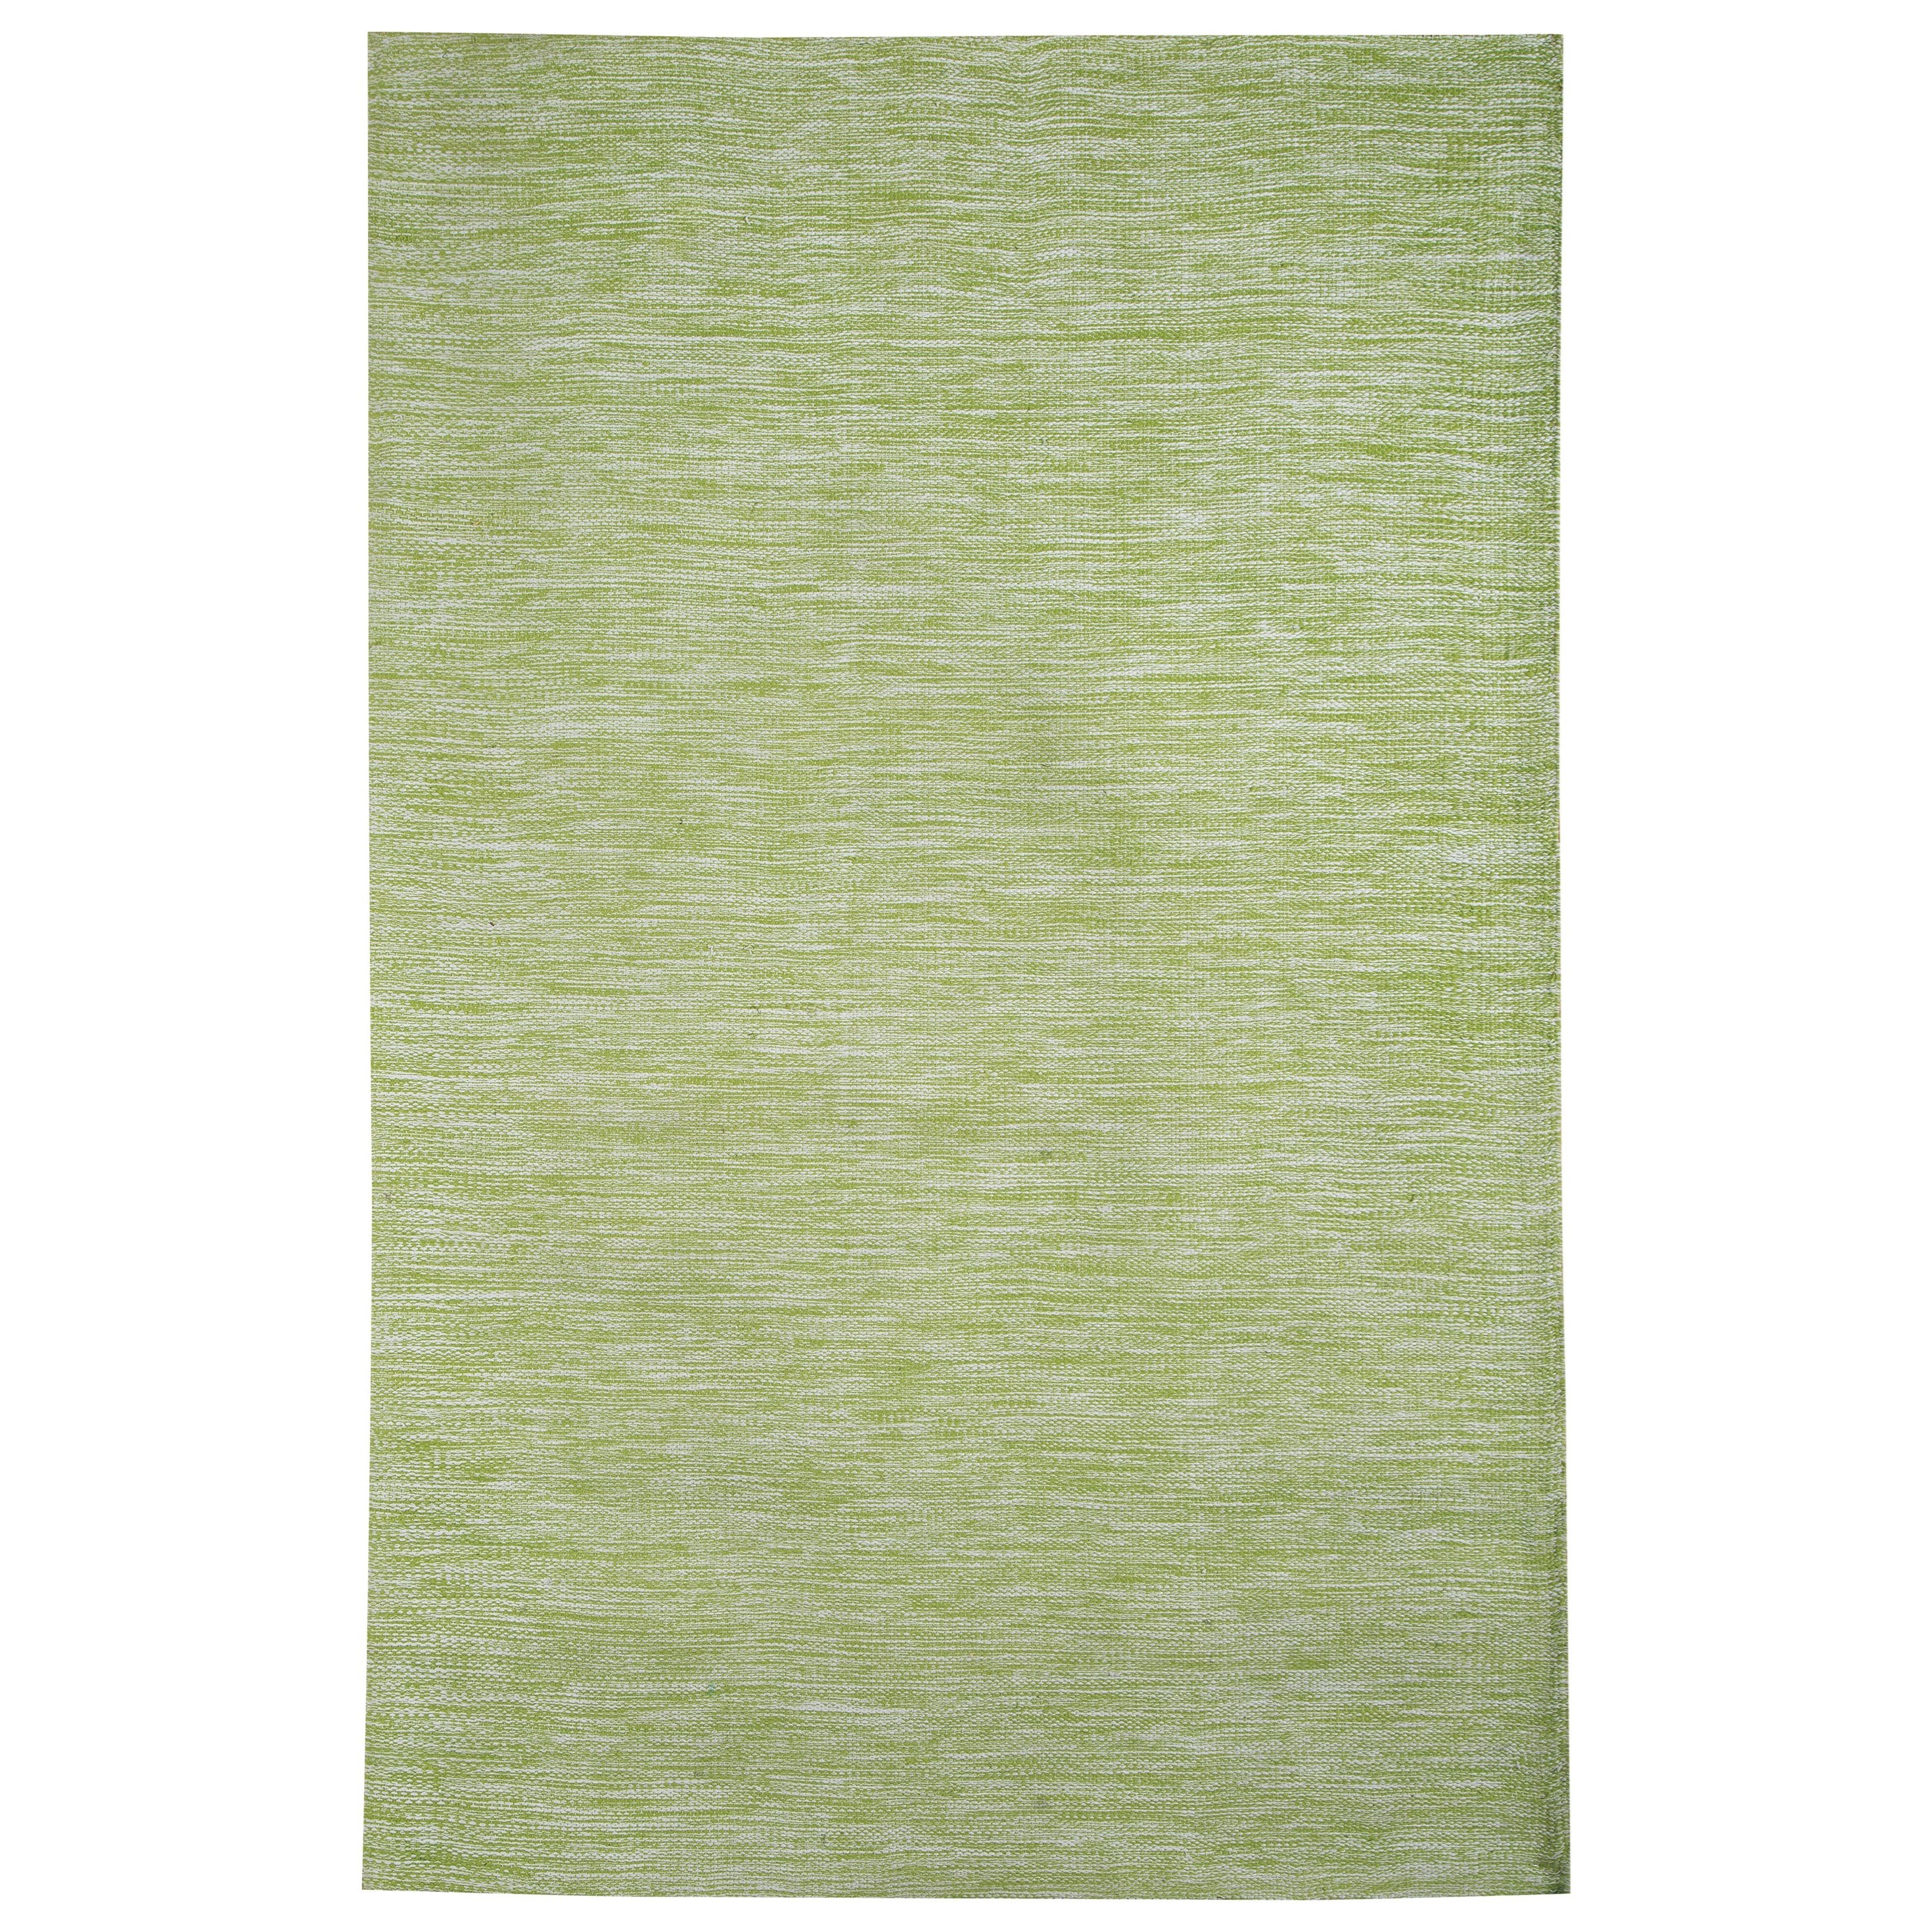 Signature Design by Ashley Contemporary Area Rugs Serphina Green Medium Rug - Item Number: R400182